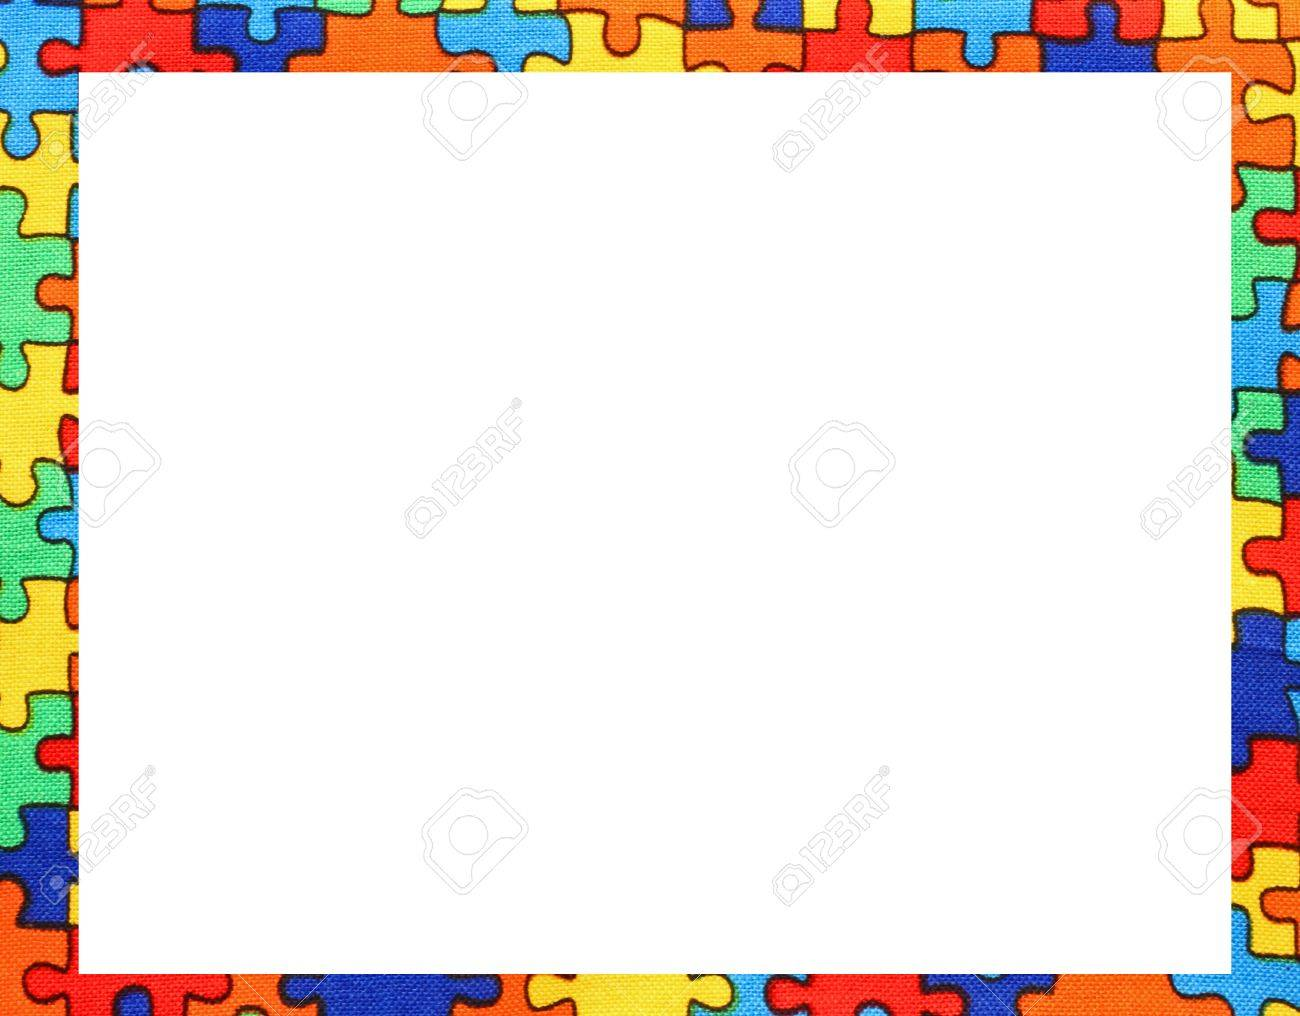 Many Puzzle Pieces Frame With Blanck Space To Write Your Text Stock